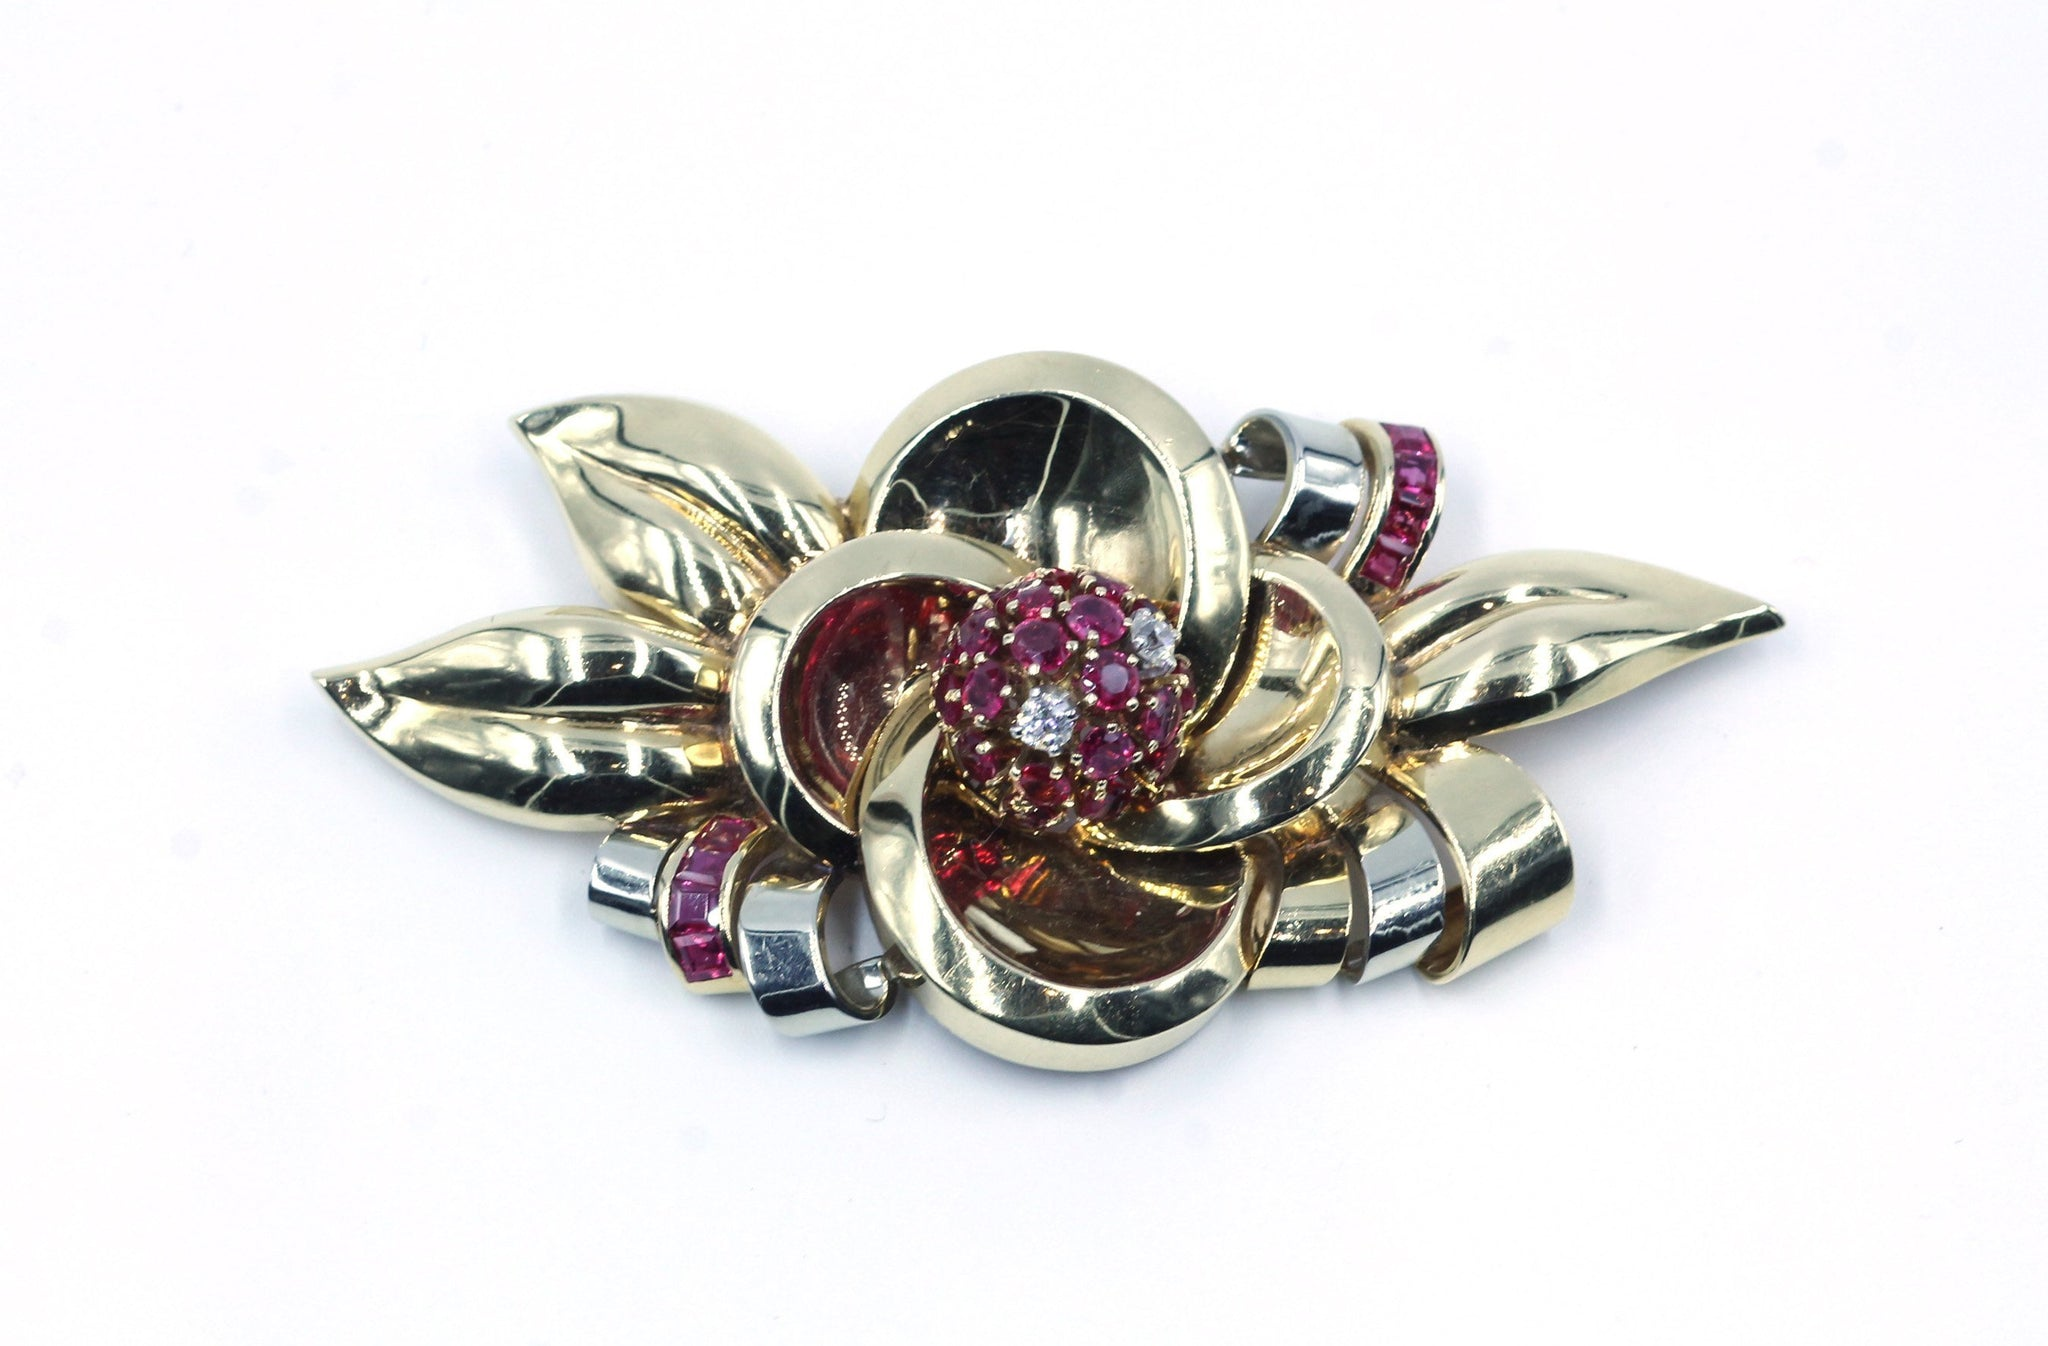 Vintage 1940's Ruby and Diamond Brooch, SOLD